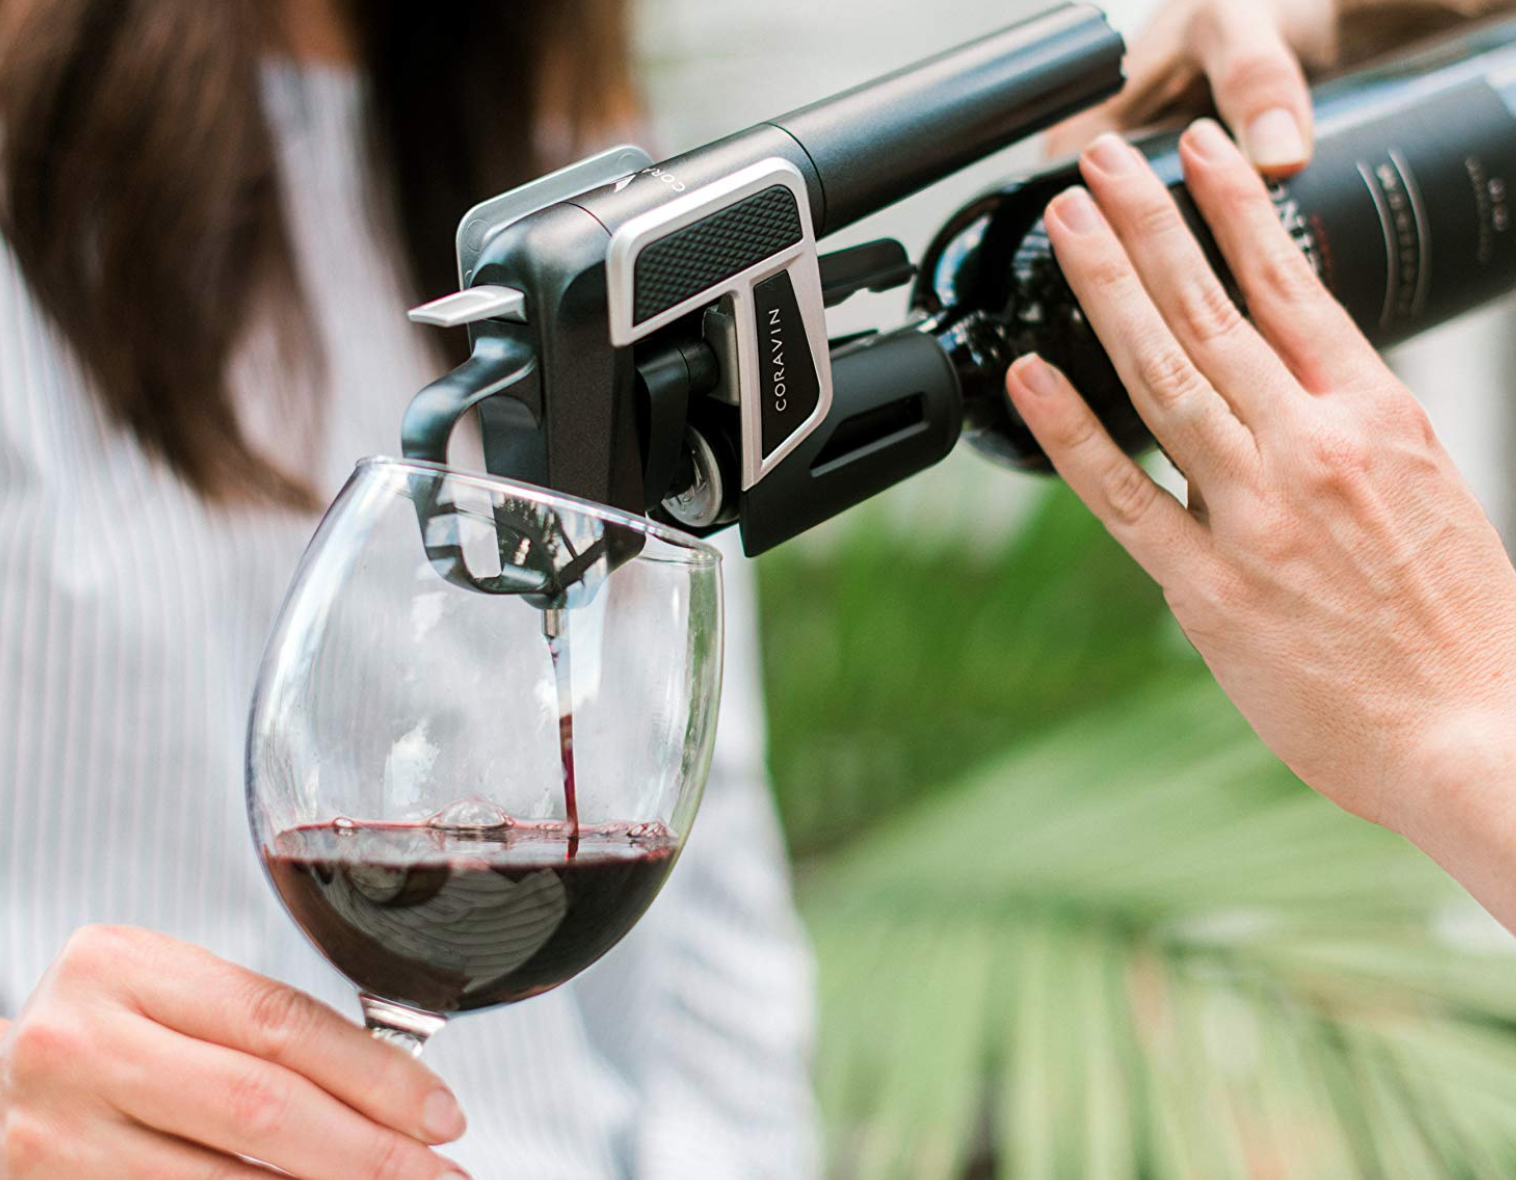 A person's hand using the Coravin wine system to pour wine into another person's wine glass